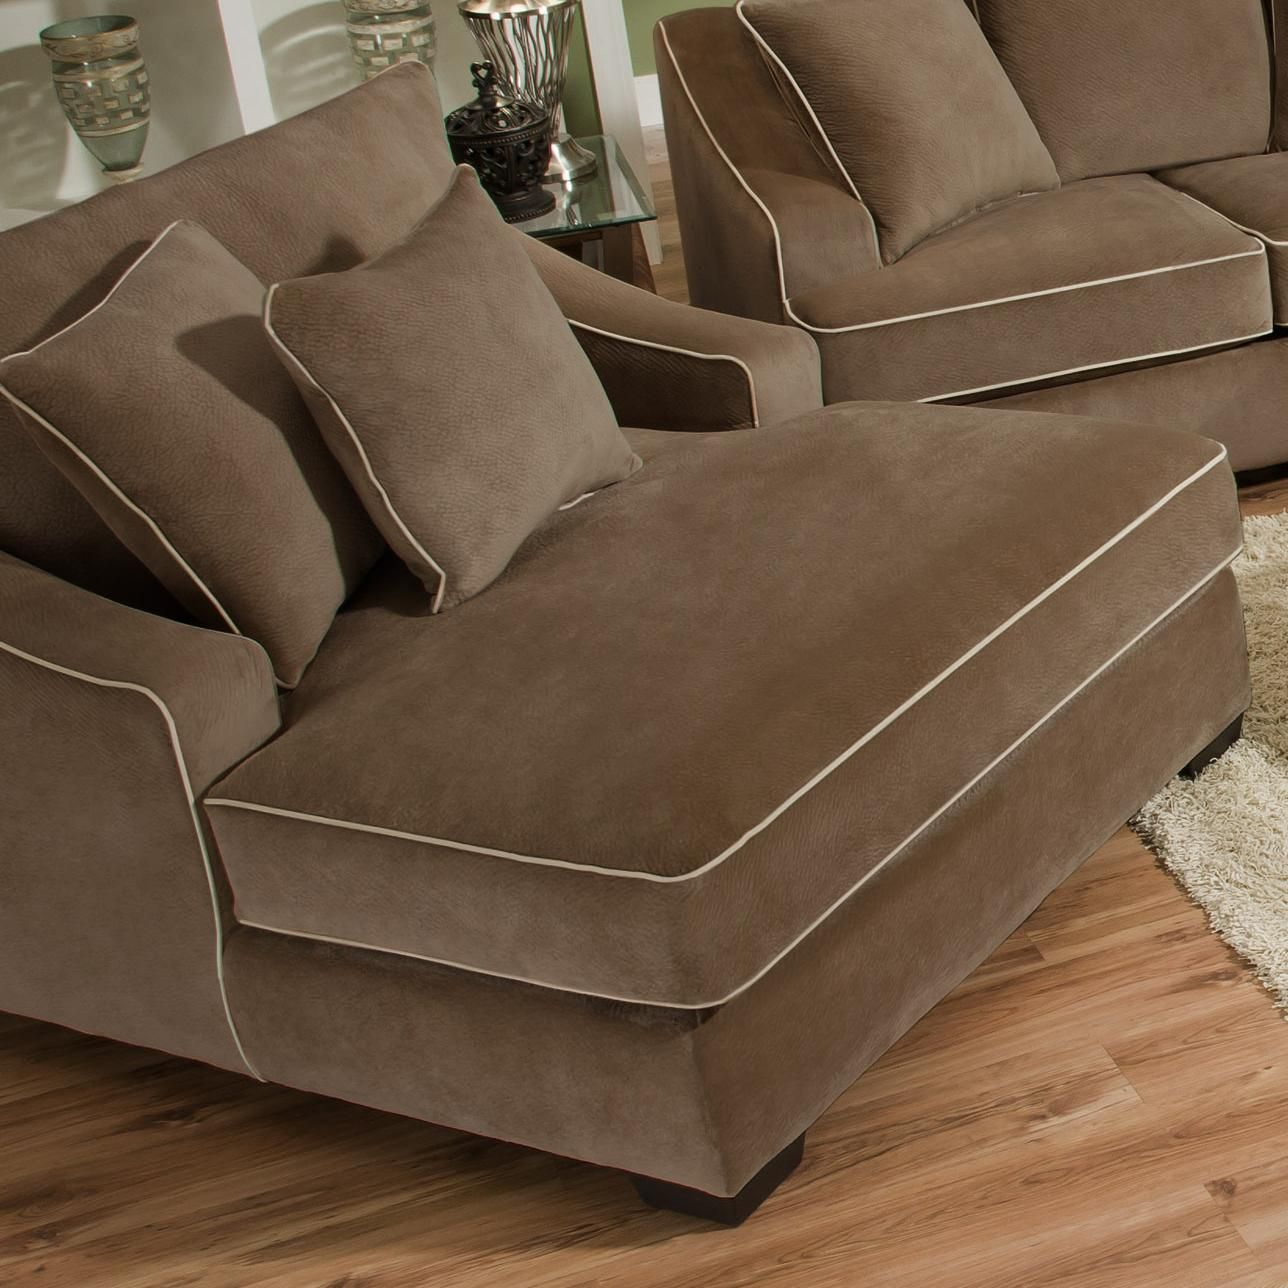 4220 extra large and comfy chaise for casual living room style by corinthian knoxville Extra large living room chairs